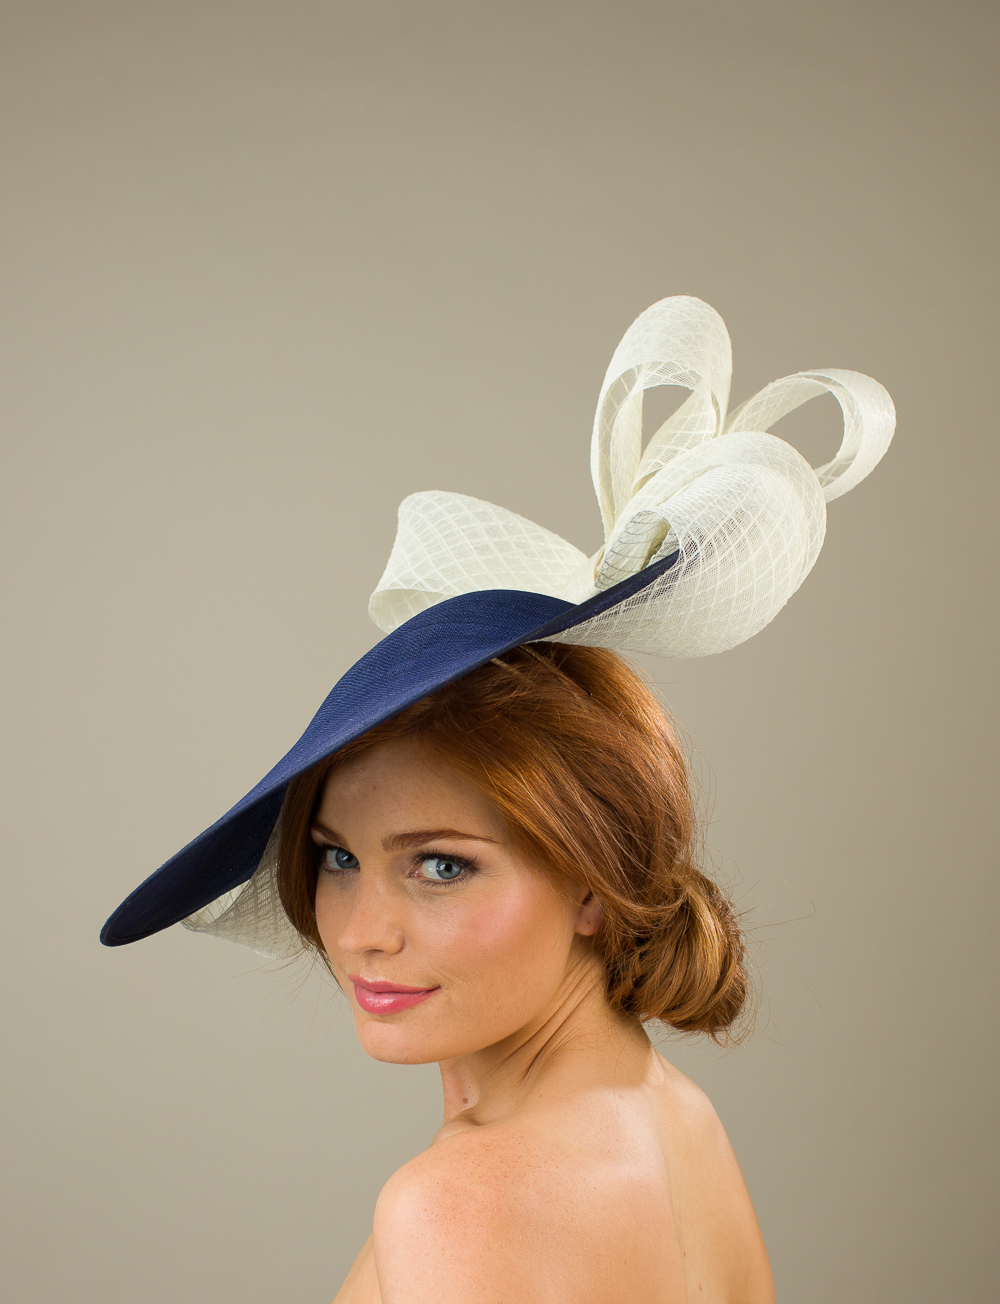 b6ce0bd23e5ca3 Stylish hats and fascinators - Hostie Hats